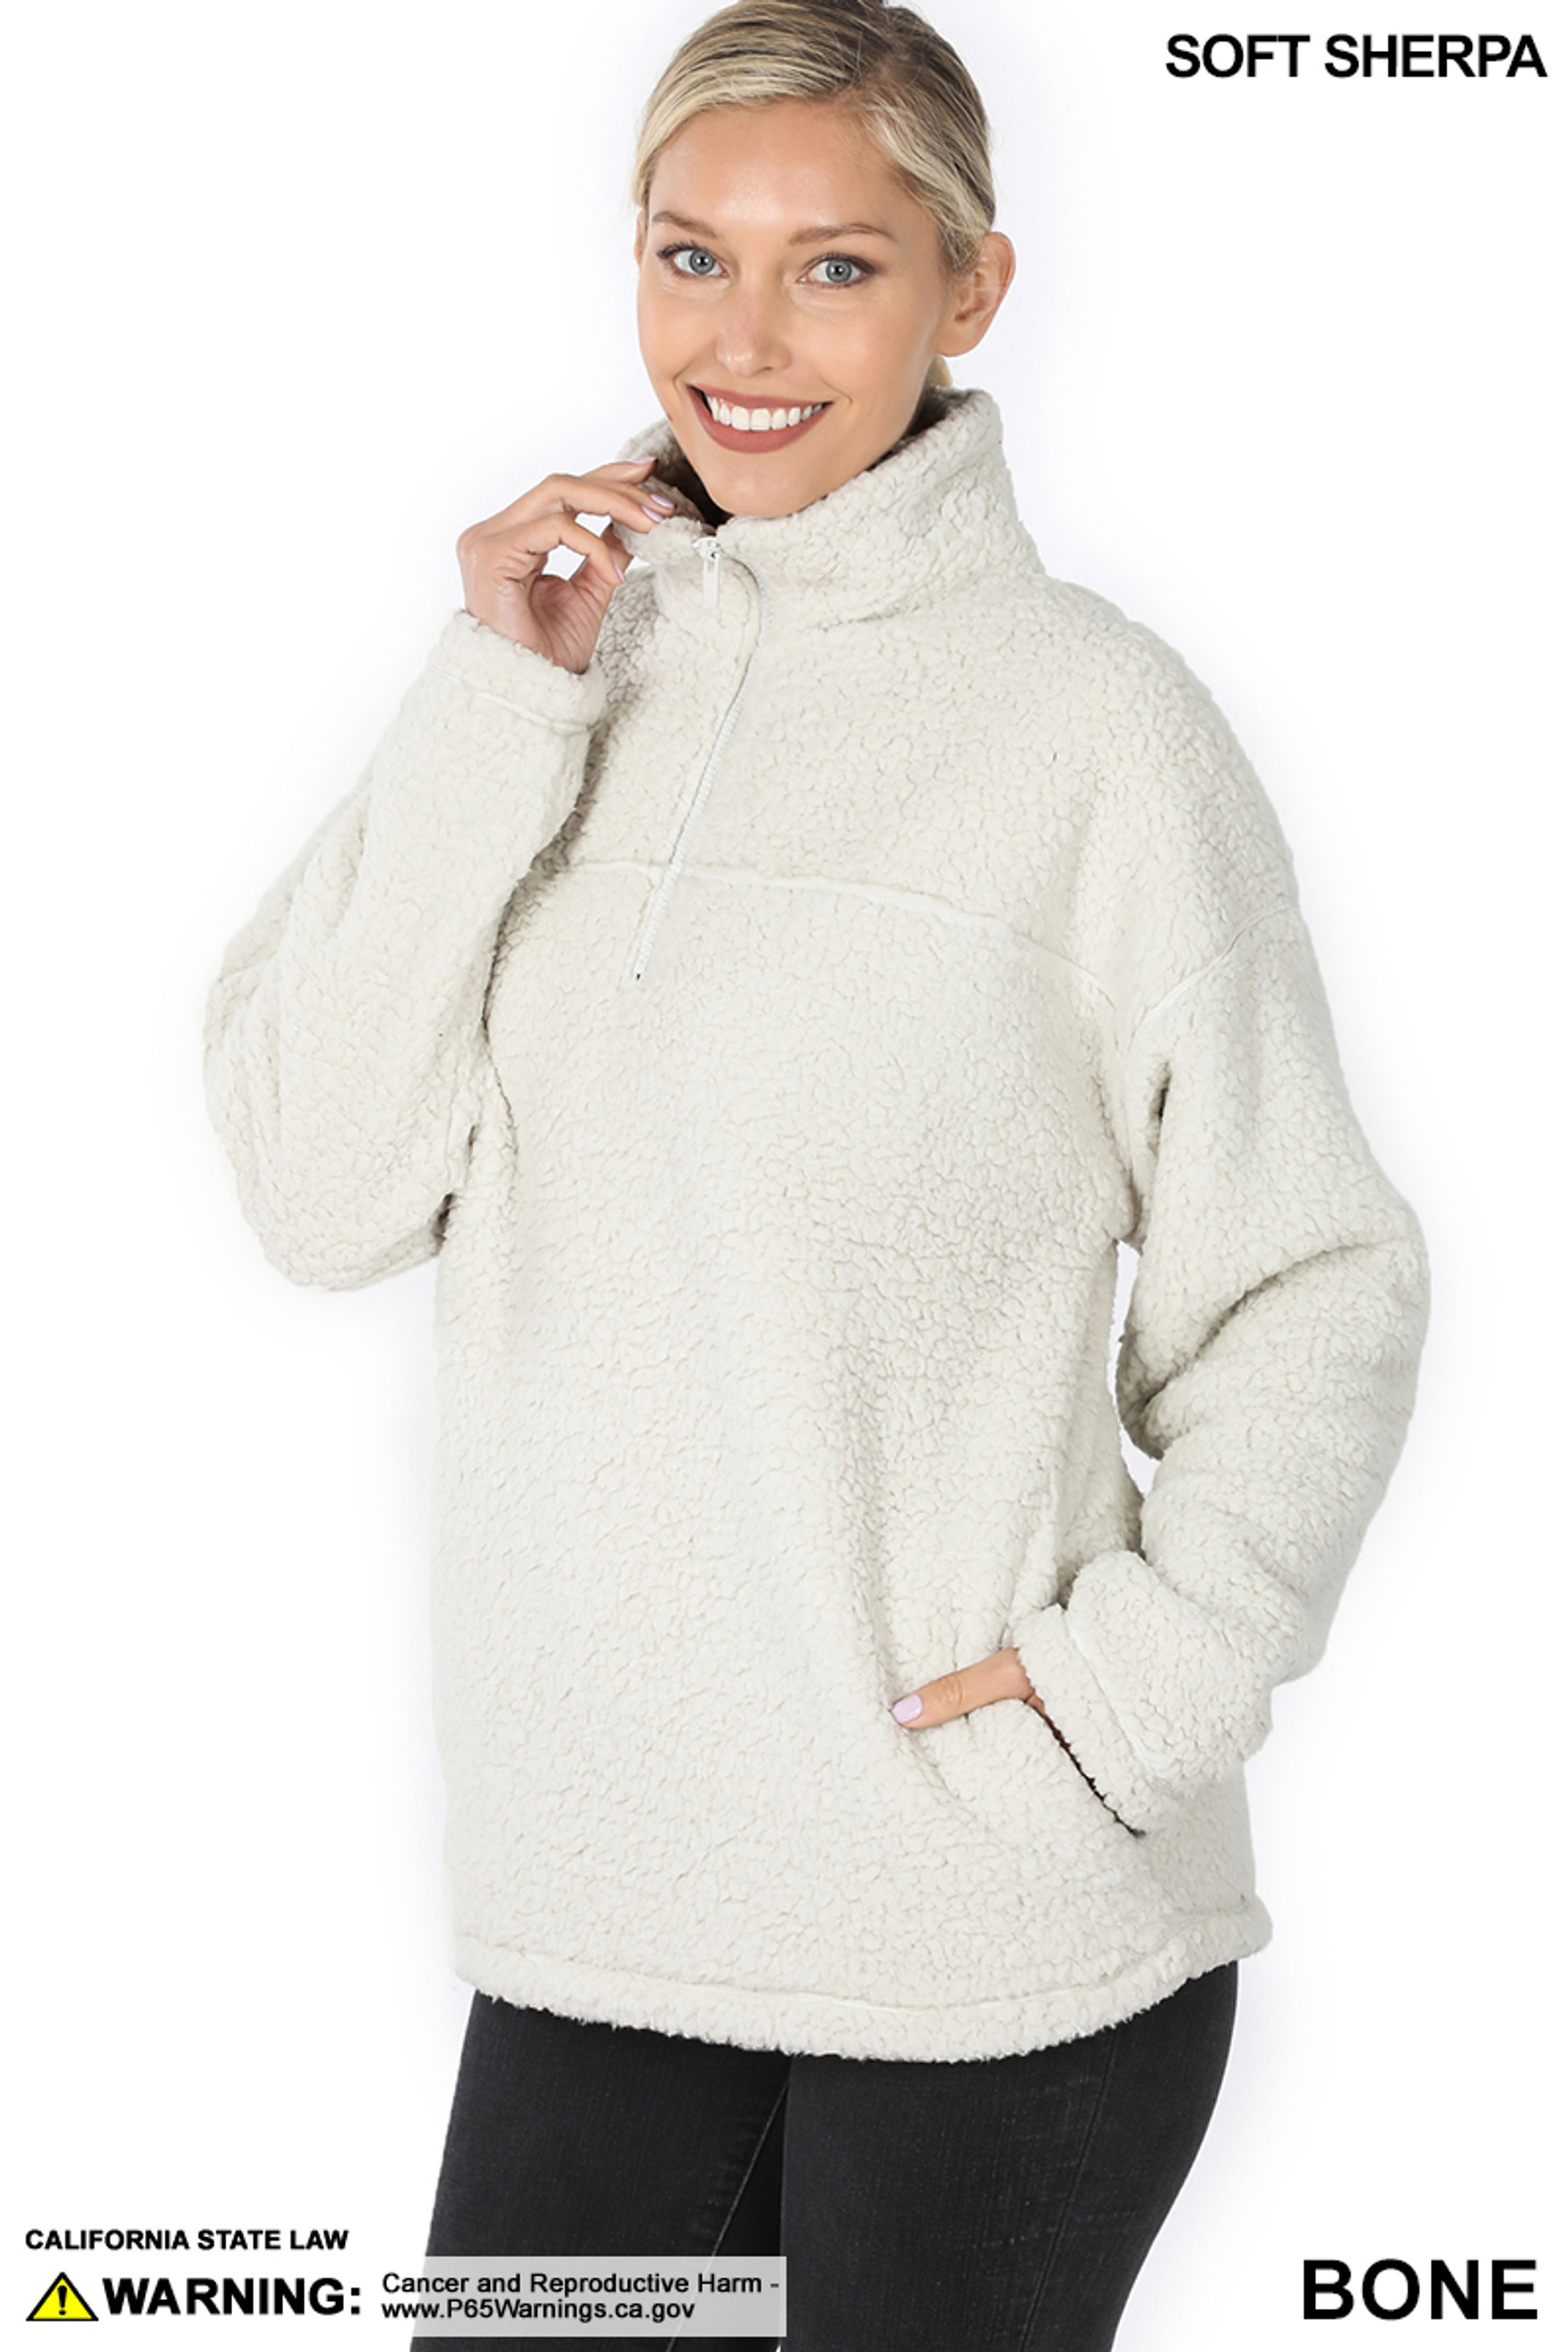 Slightly turned image of Bone Sherpa Half Zip Pullover with Side Pockets